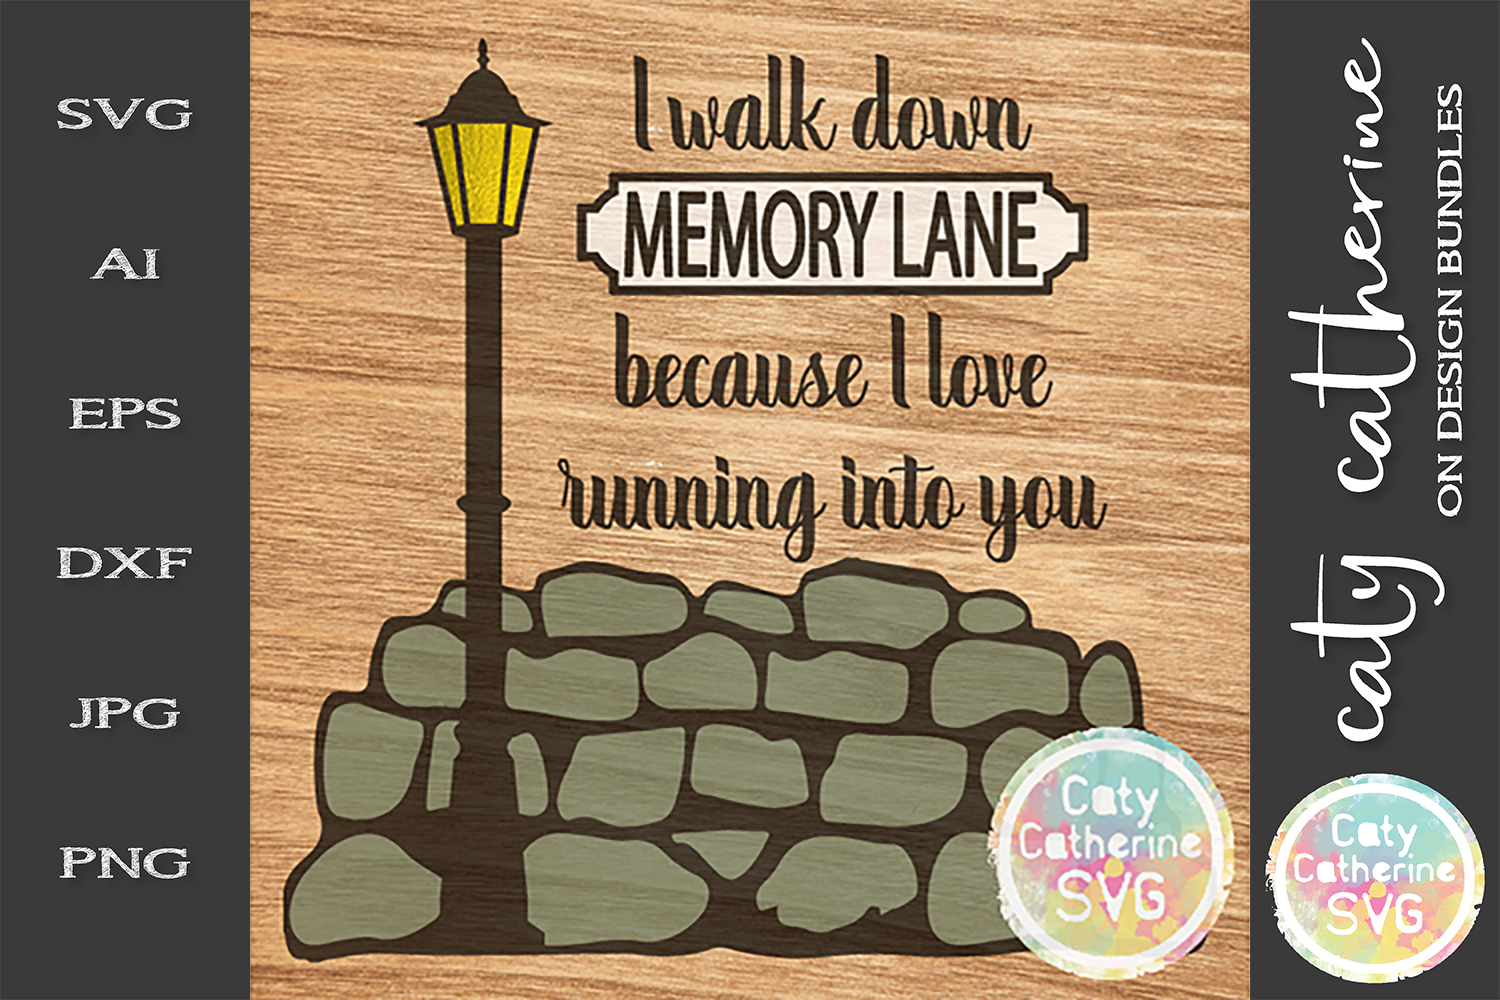 I Walk Down Memory Lane Because I love Running Into You SVG example image 1